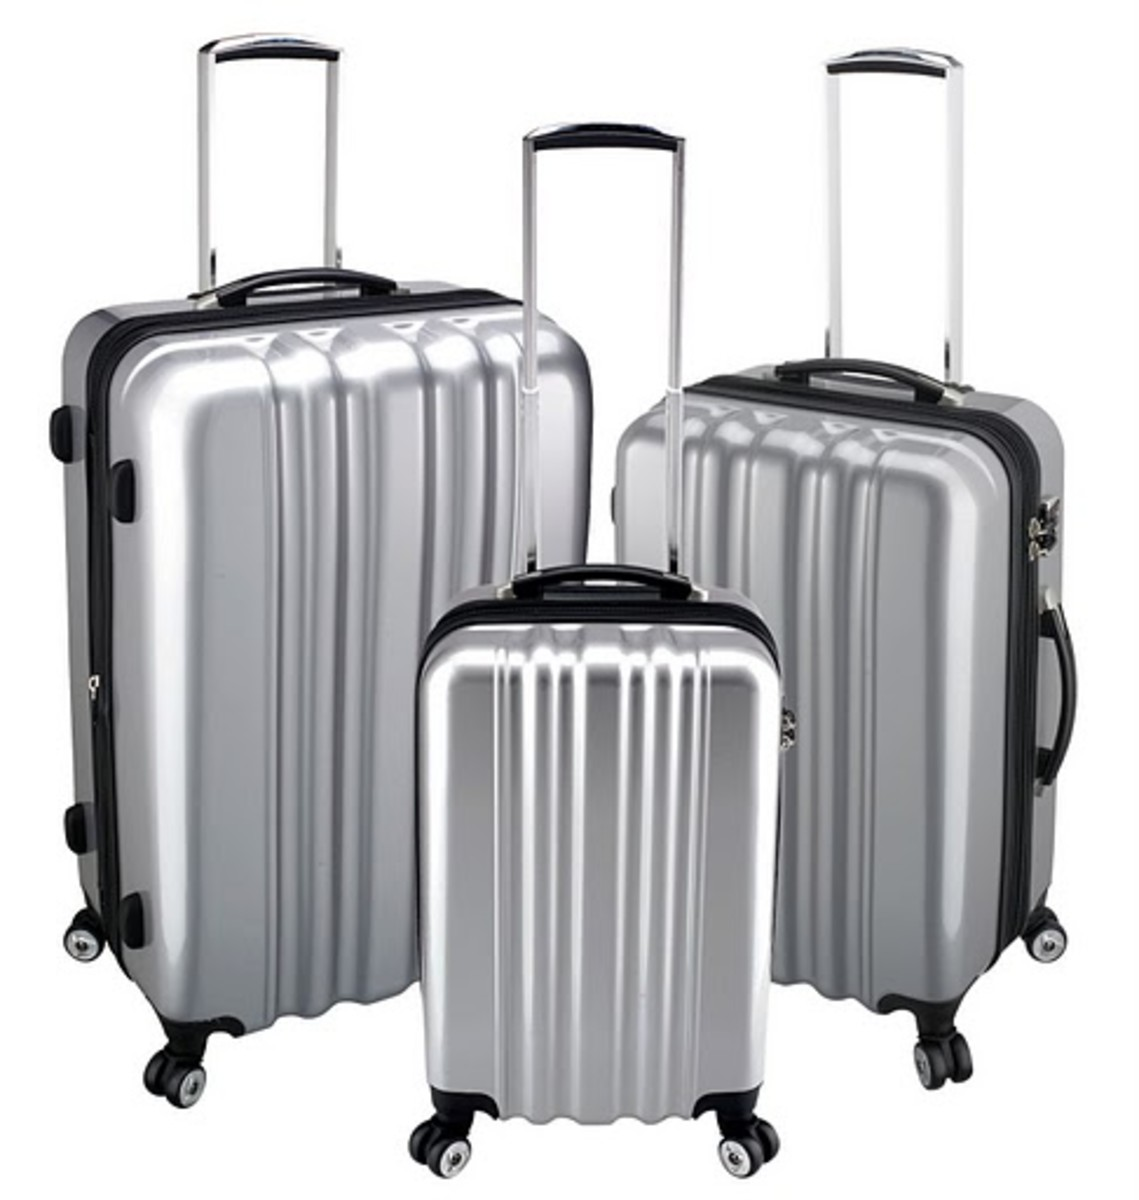 Heys zCase Collection in Metallic Silver http://www.airlineintl.com/catalog/zcase-spinner-collection-by-heys-usa